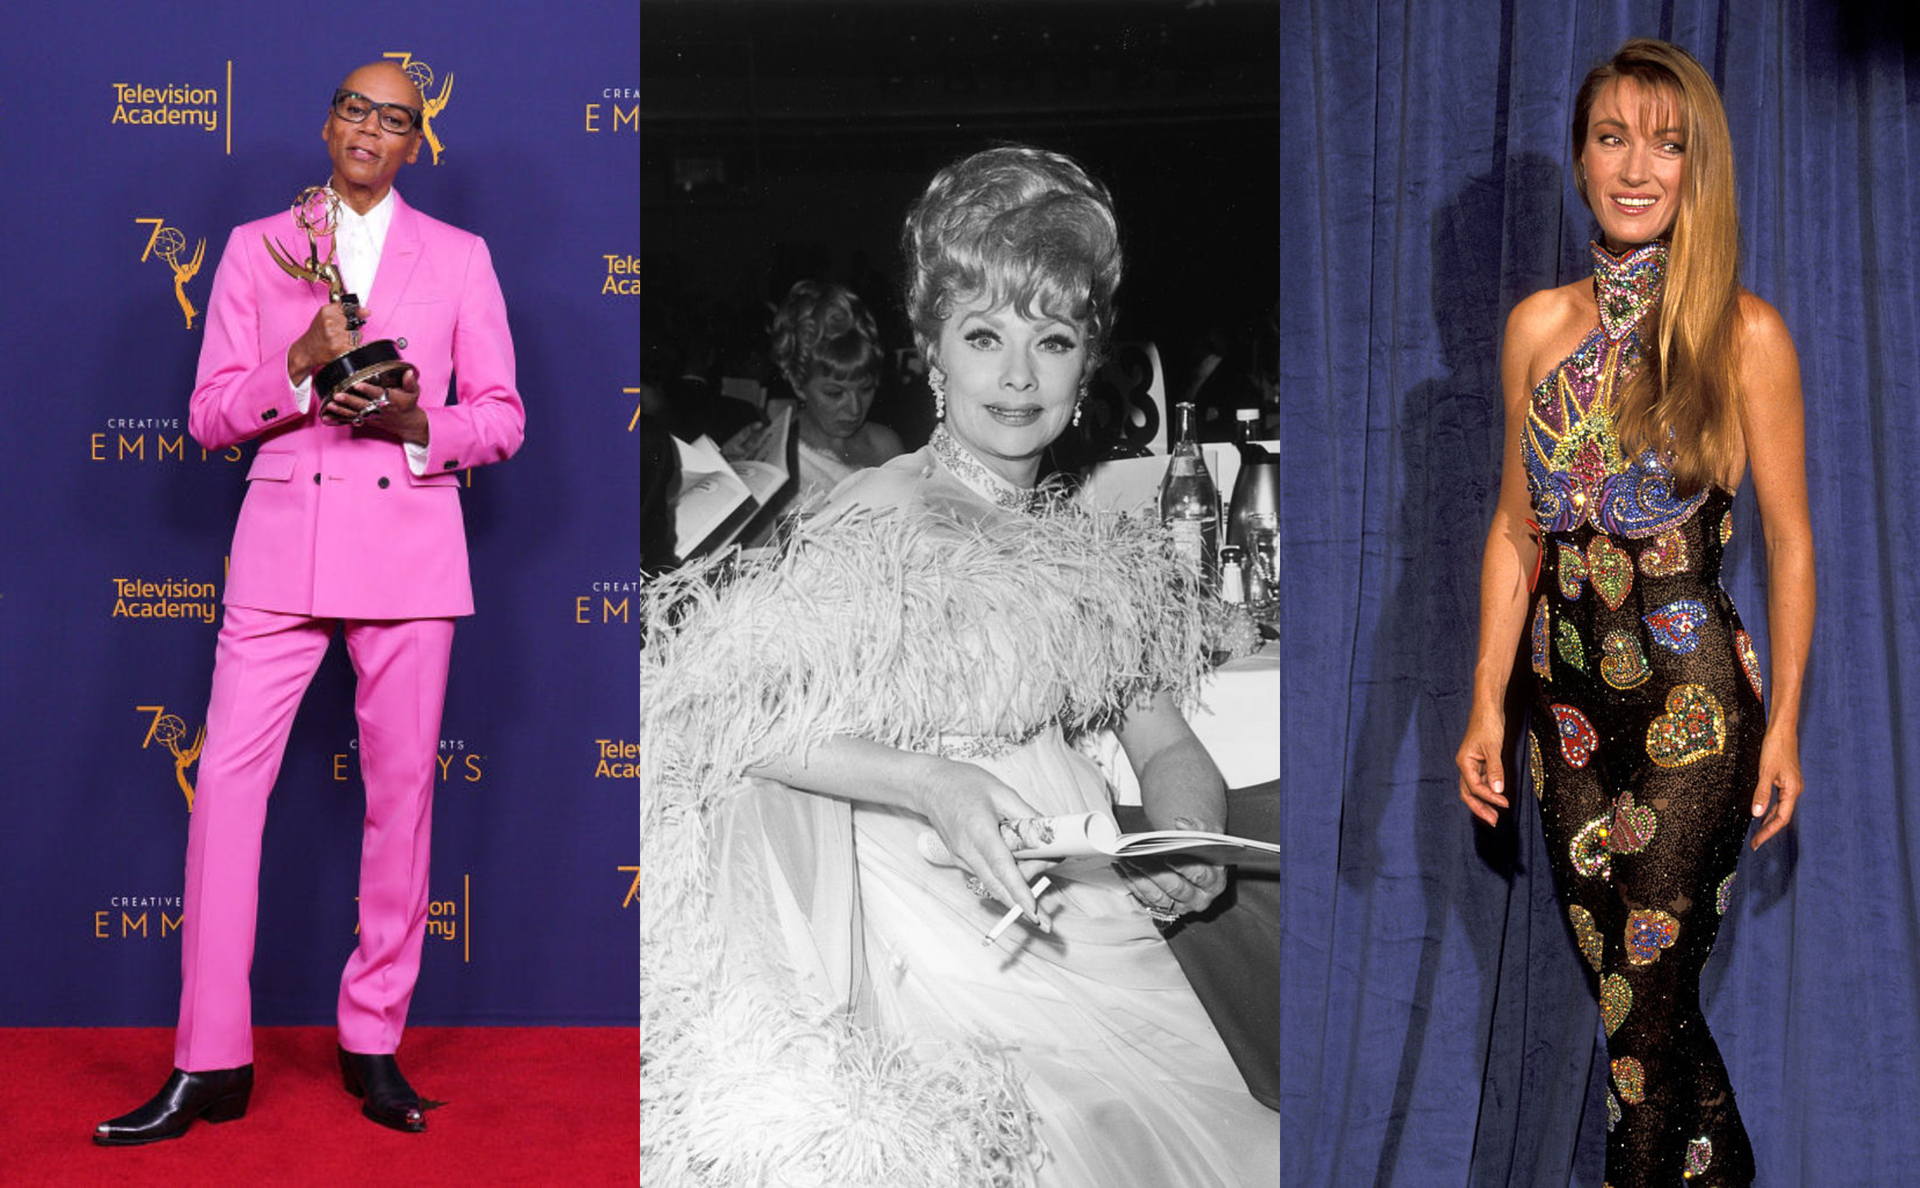 The Emmys: Best red carpet looks of all time